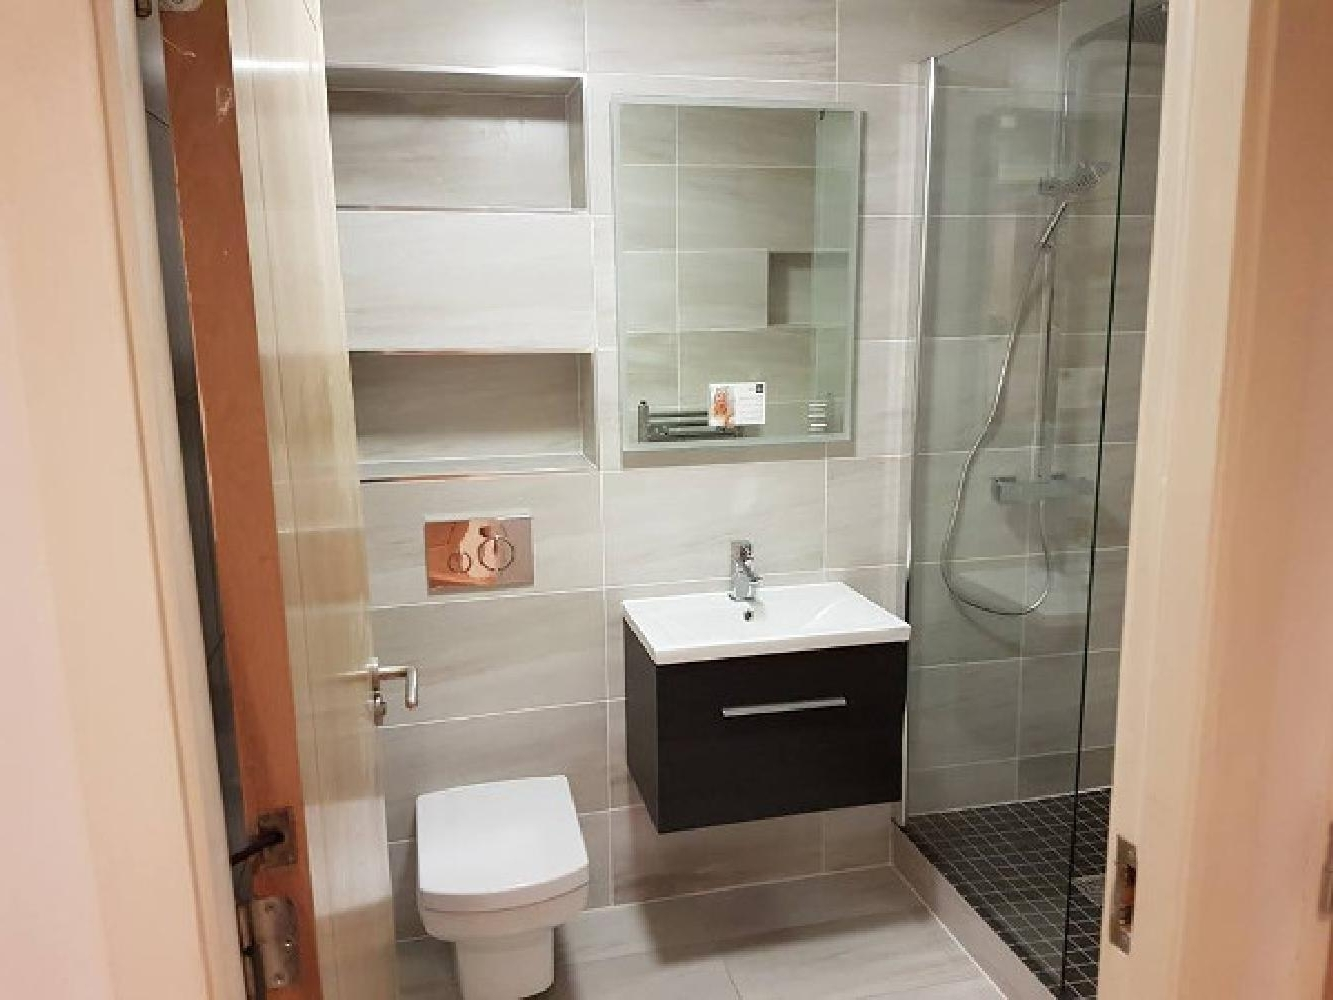 Ensuites | Bespoke Ensuite Bathroom Design & Installation Small Ensuite Bathroom Ireland